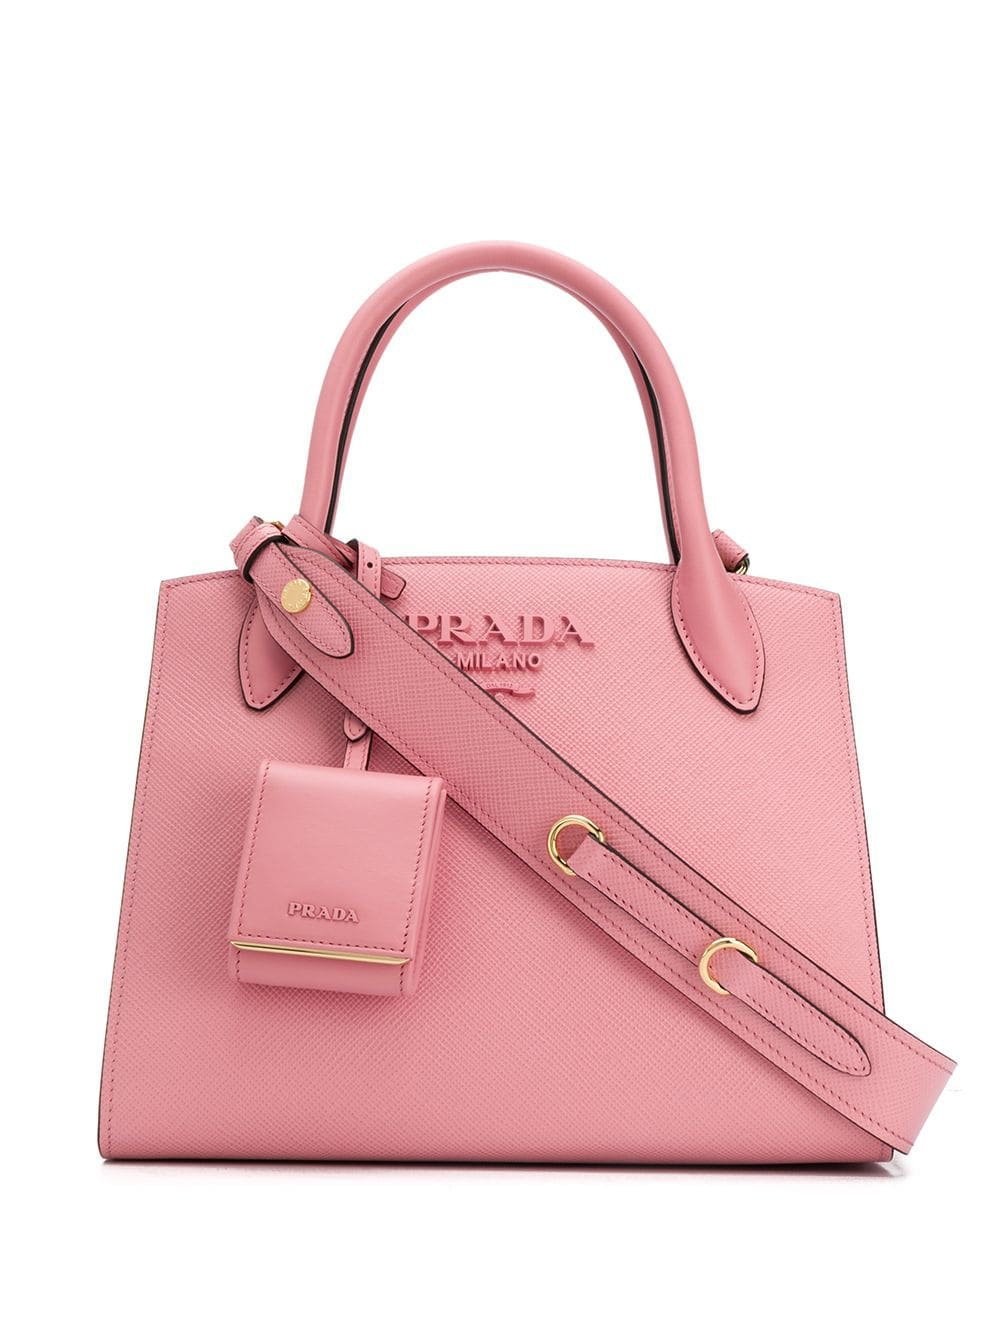 Prada Saffiano leather tote bag £1,490 - Shop Online. Same Day Delivery in London